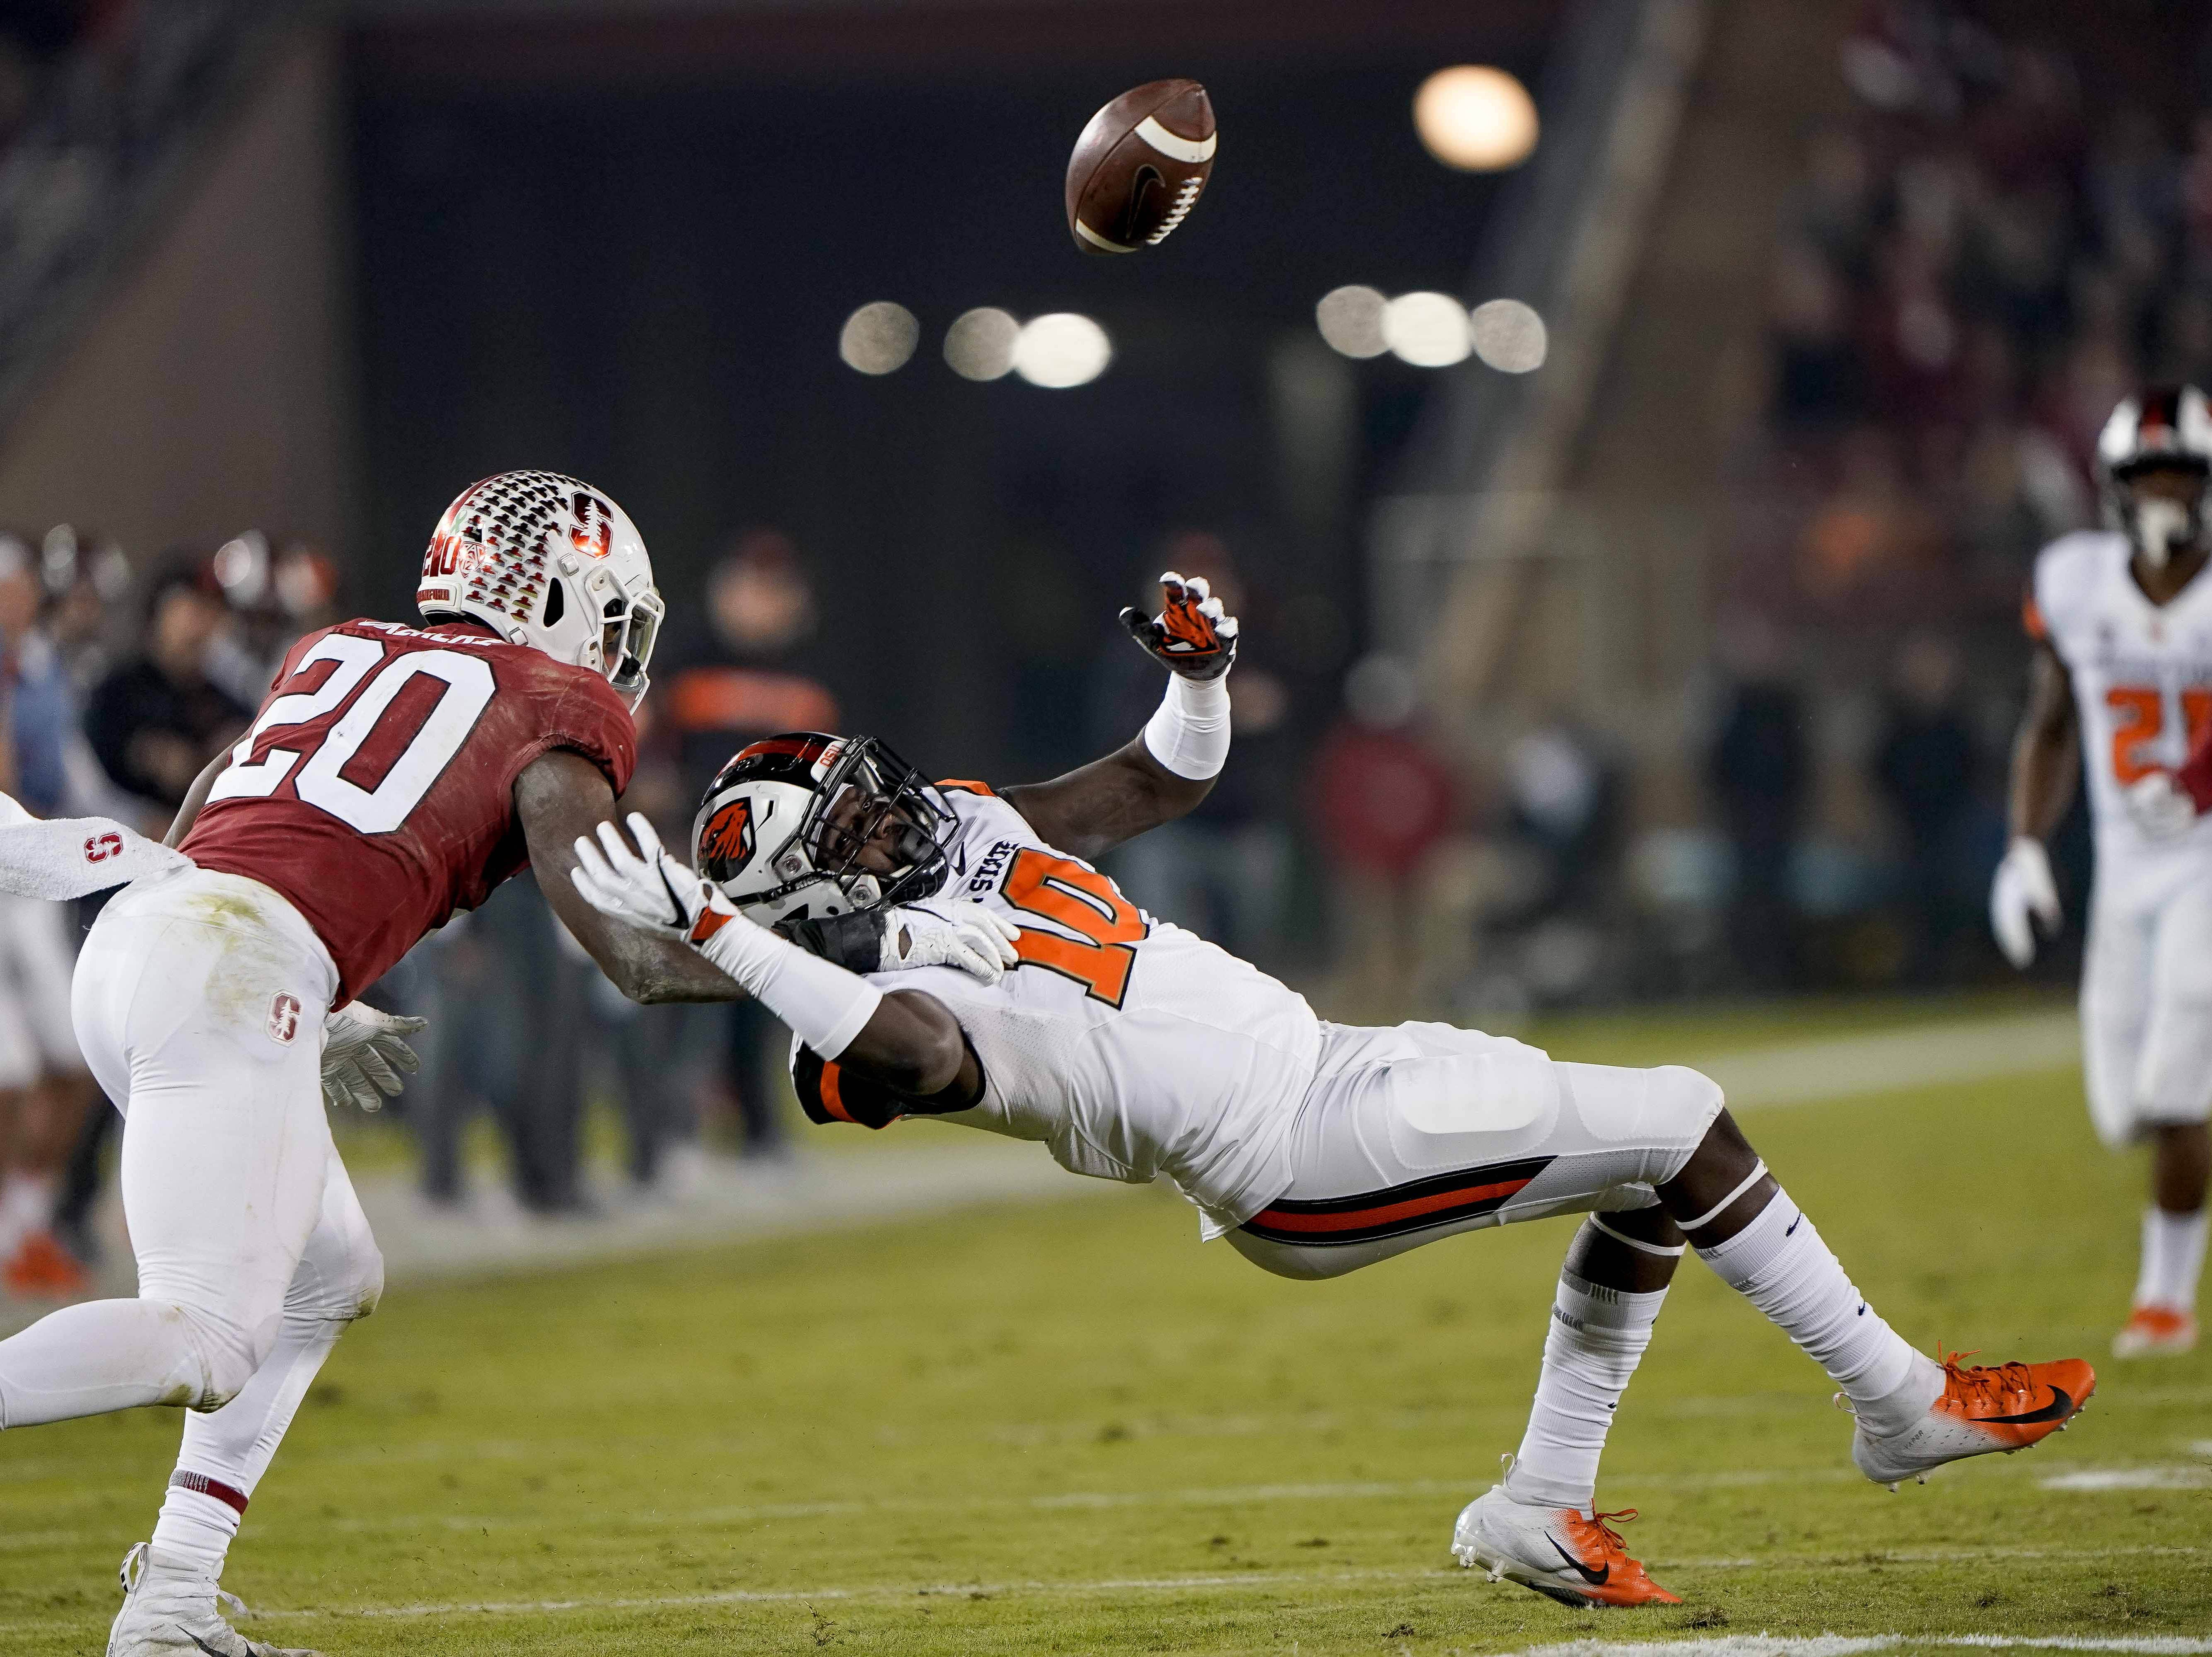 Stanford Cardinal linebacker Bobby Okereke (20) defends against Oregon State Beavers tight end Isaiah Smalls (10) during the second quarter at Stanford Stadium.